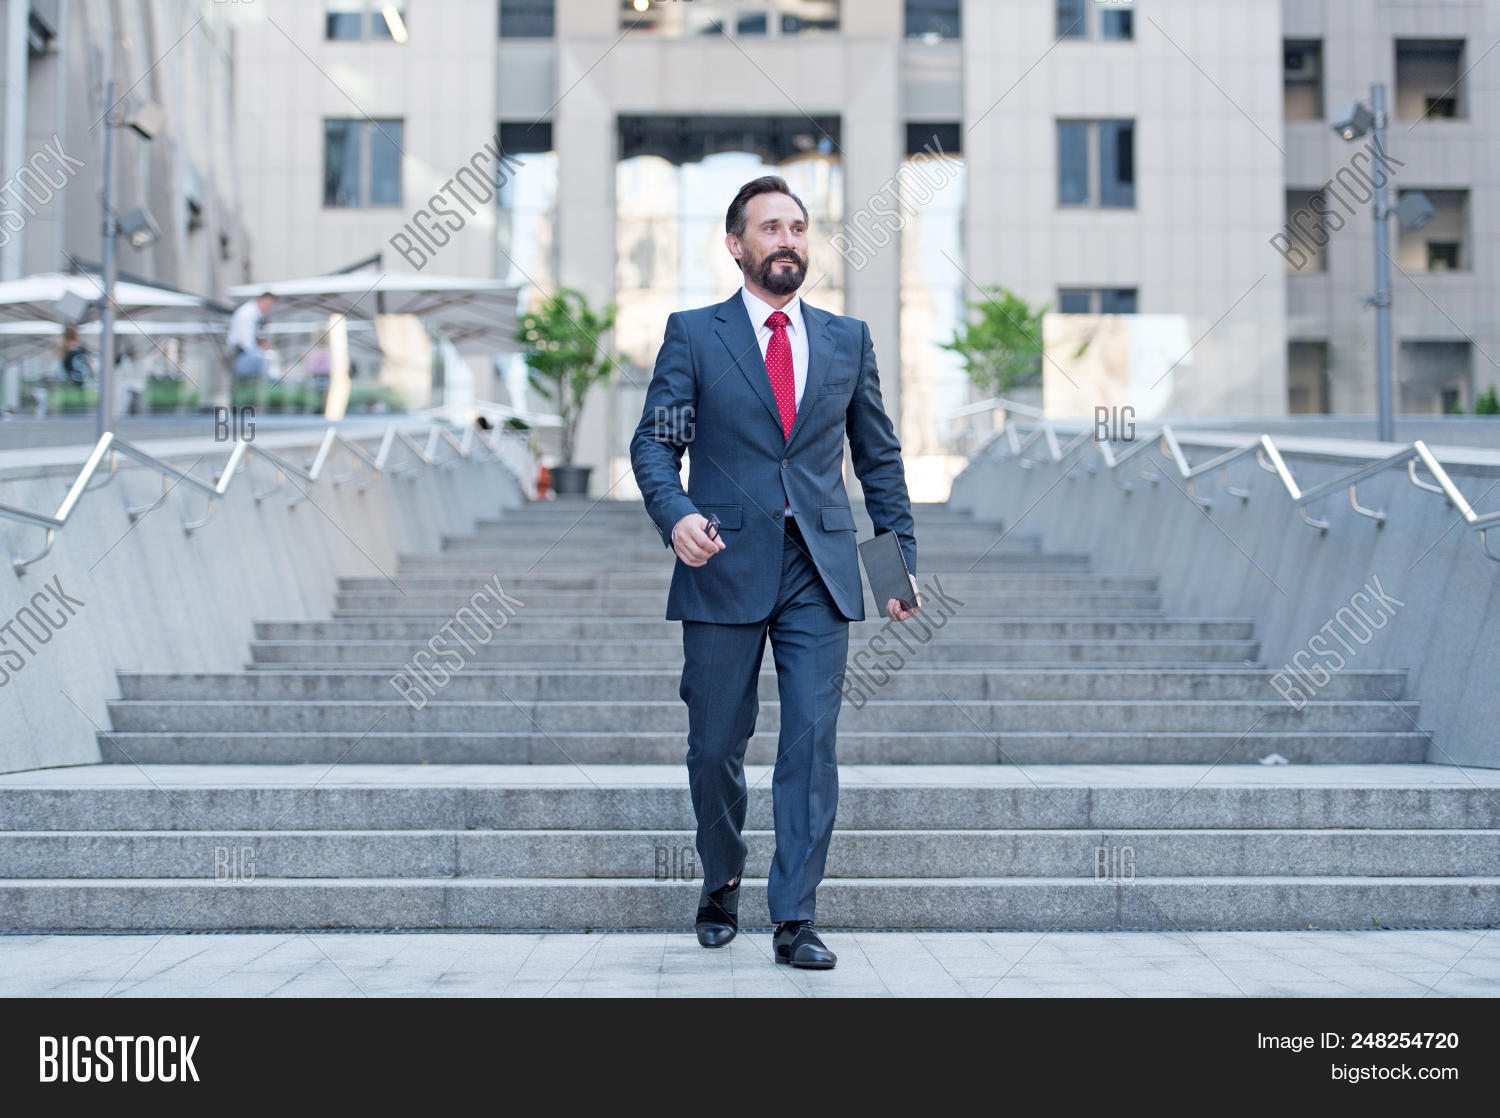 Happy Business Person Image Photo Free Trial Bigstock